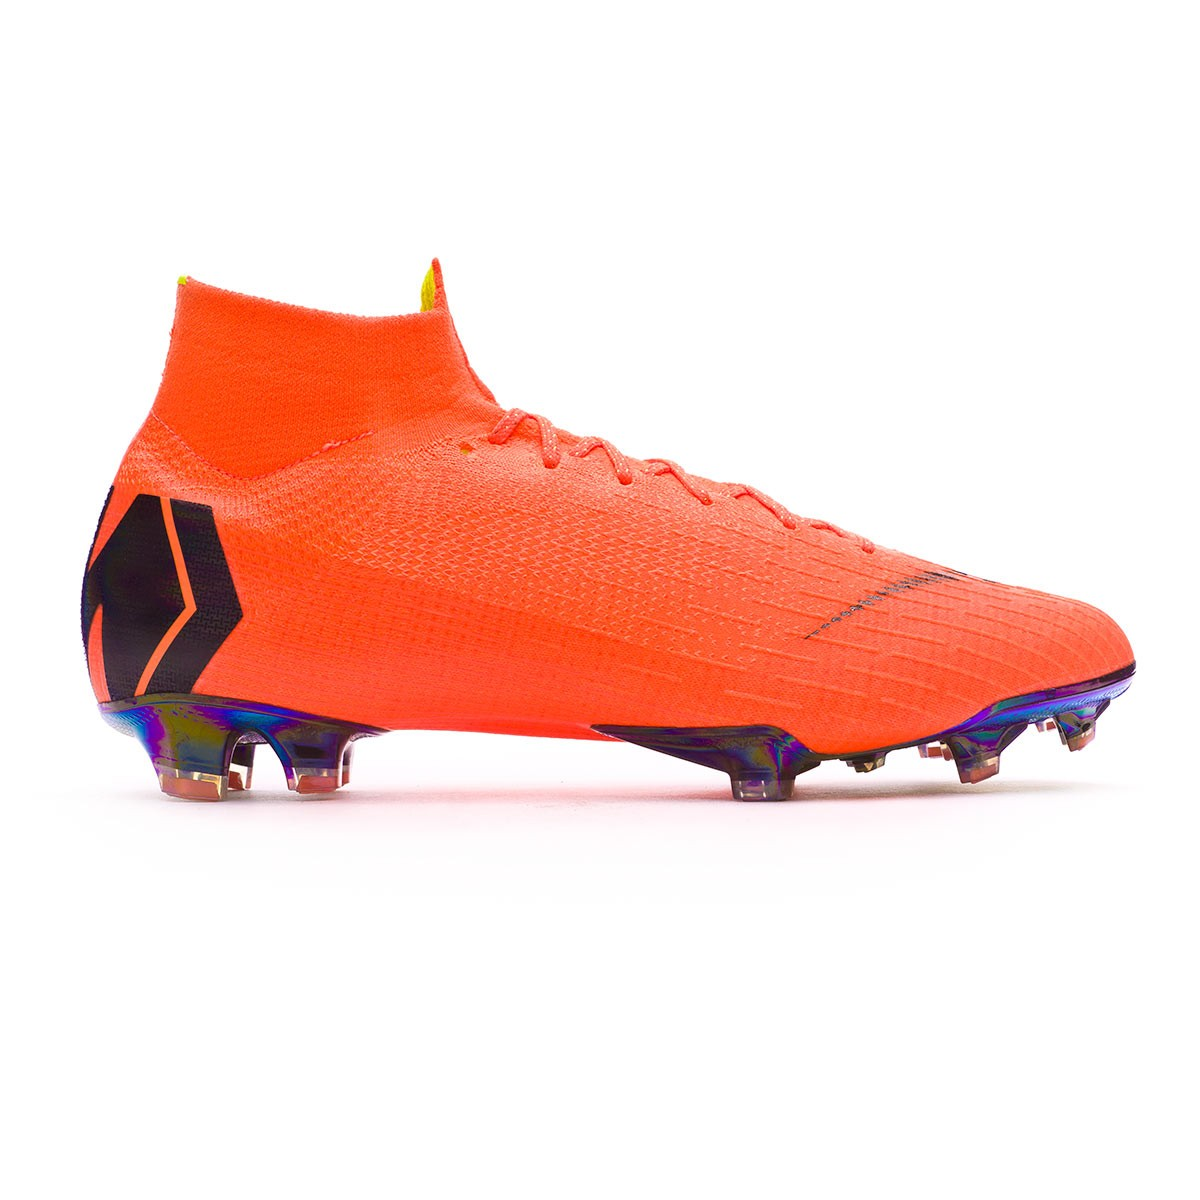 new products 1cccd 7da67 Football Boots Nike Mercurial Superfly VI Elite FG Total orange-Black-Volt  - Football store Fútbol Emotion